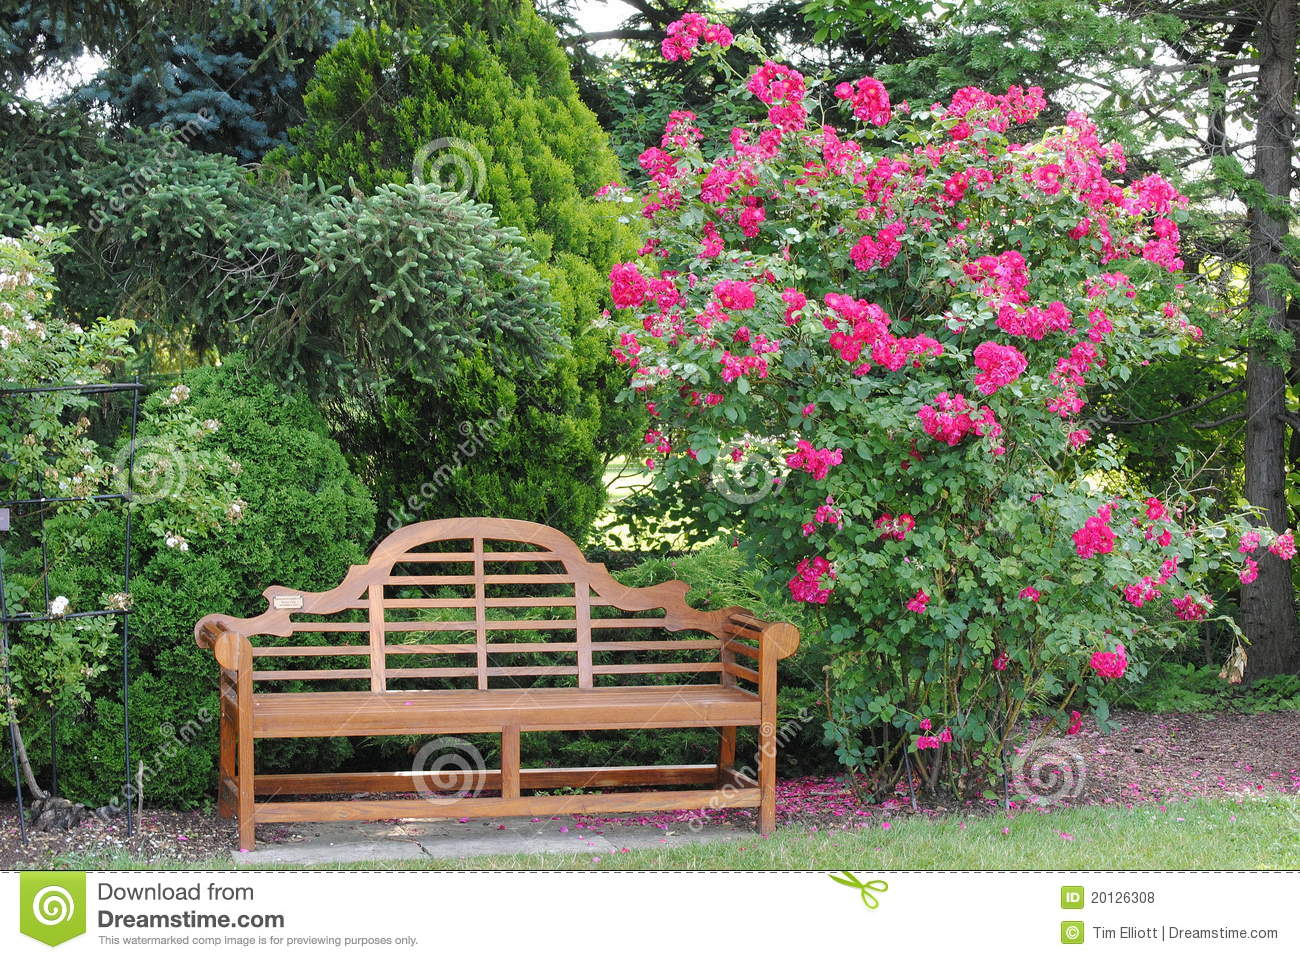 Rosier et un banc de jardin photos libres de droits image 20126308 for Plan banc de jardin